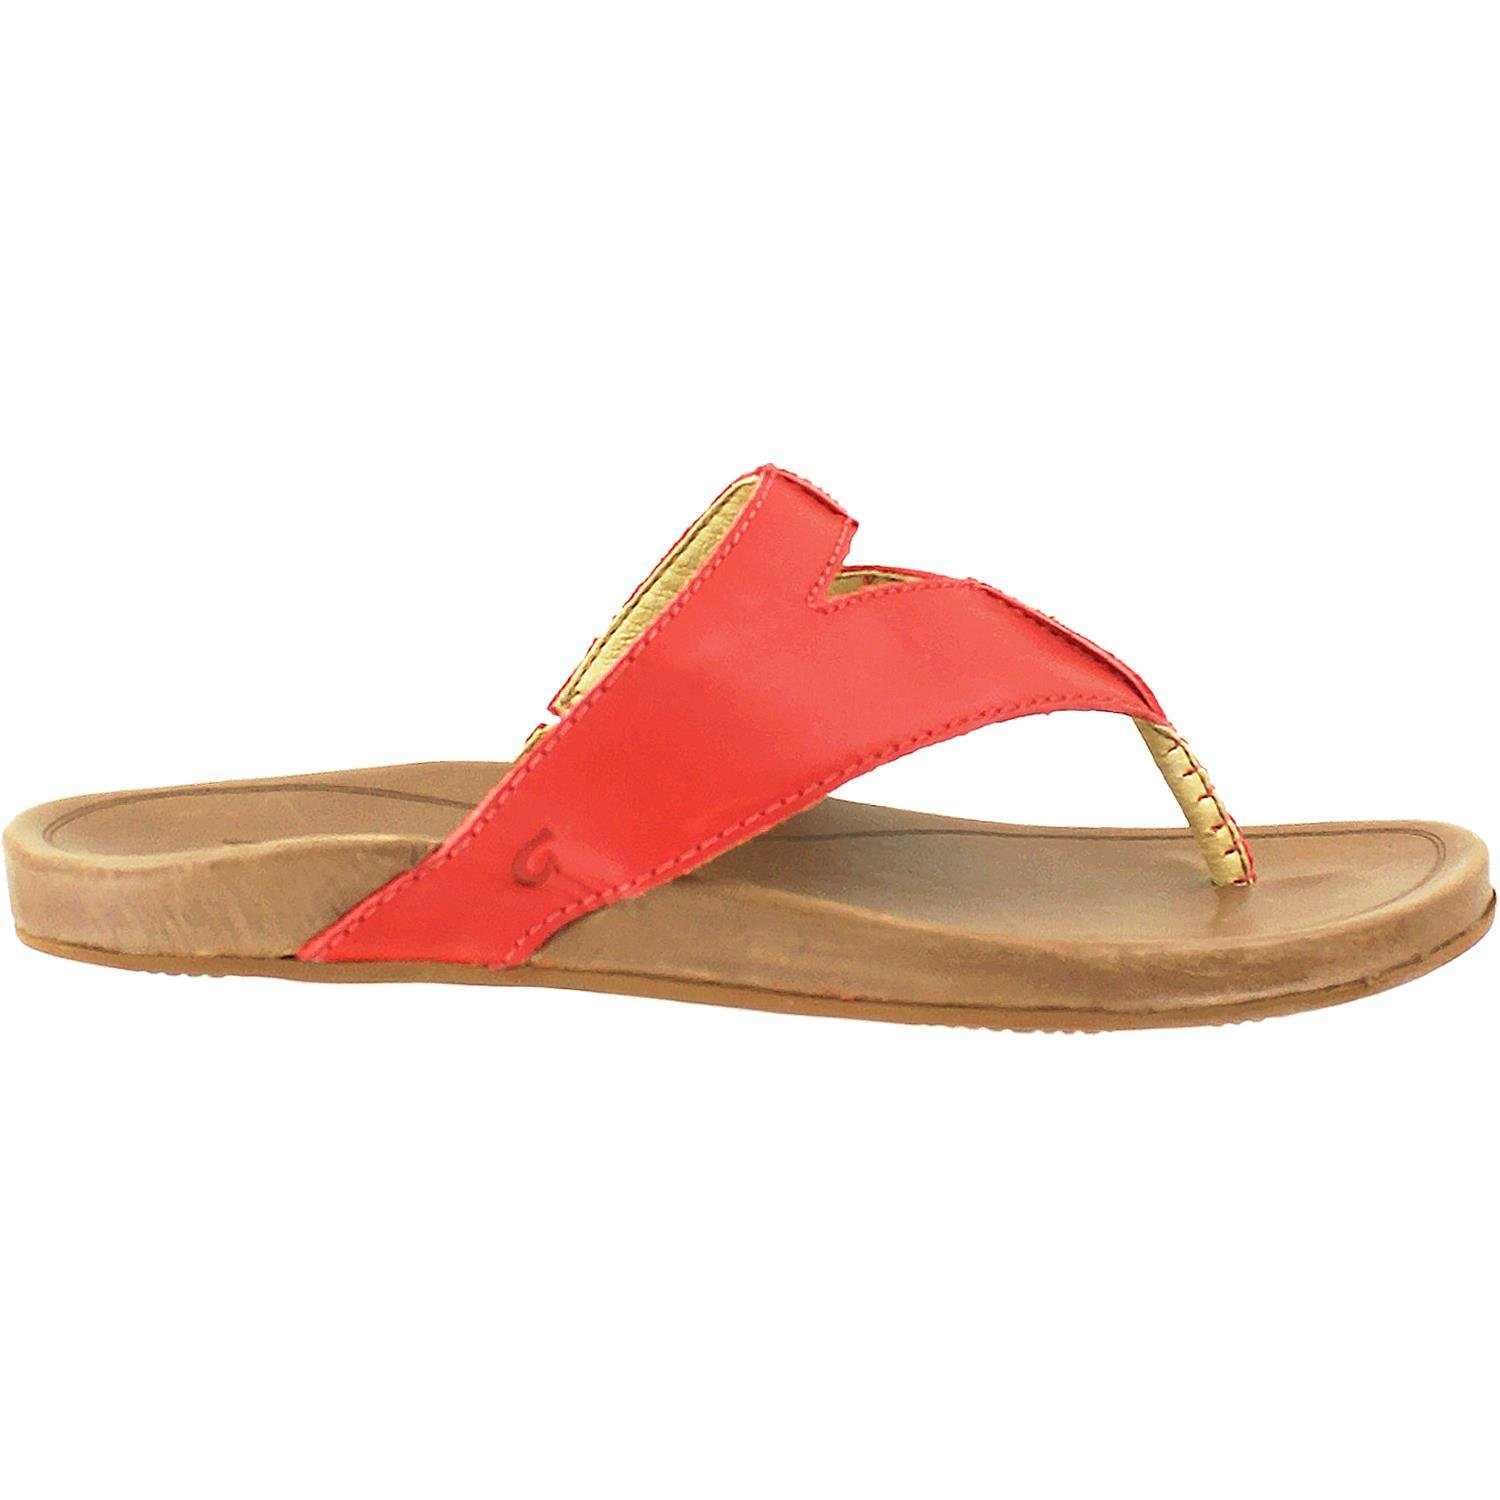 OluKai Women's Lala Paprika/Tan 9 B US by OluKai